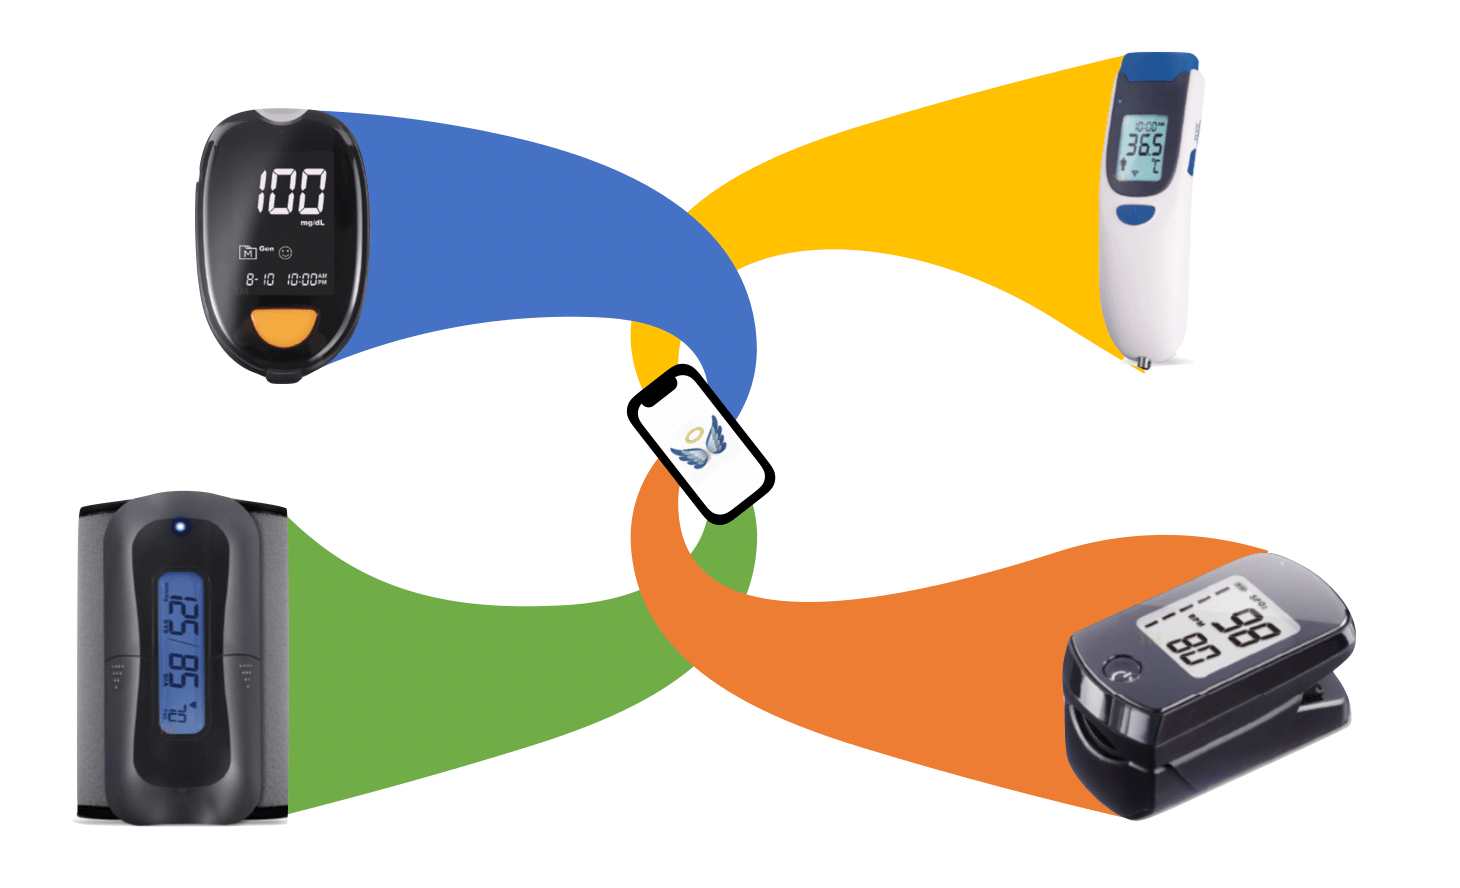 Telehealth connect medical devices GAC - Guardian Angel Connect App